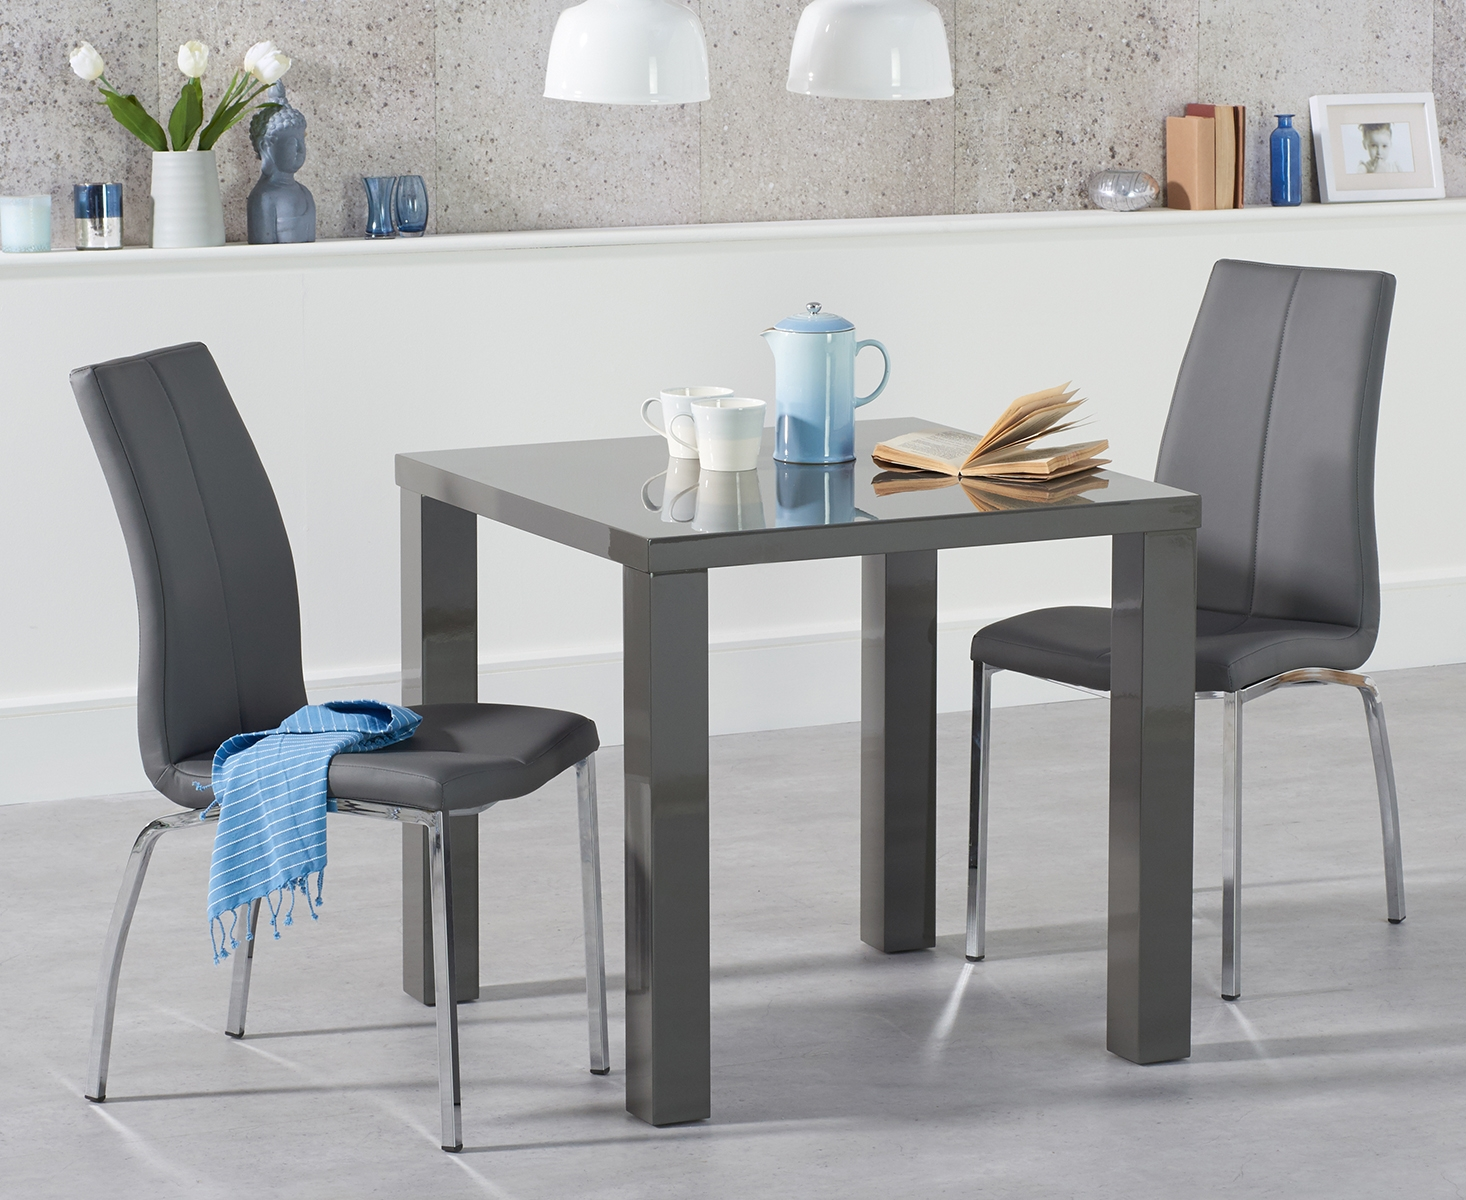 An image of Atlanta 80cm Dark Grey High Gloss Dining Table with Cavello Chairs